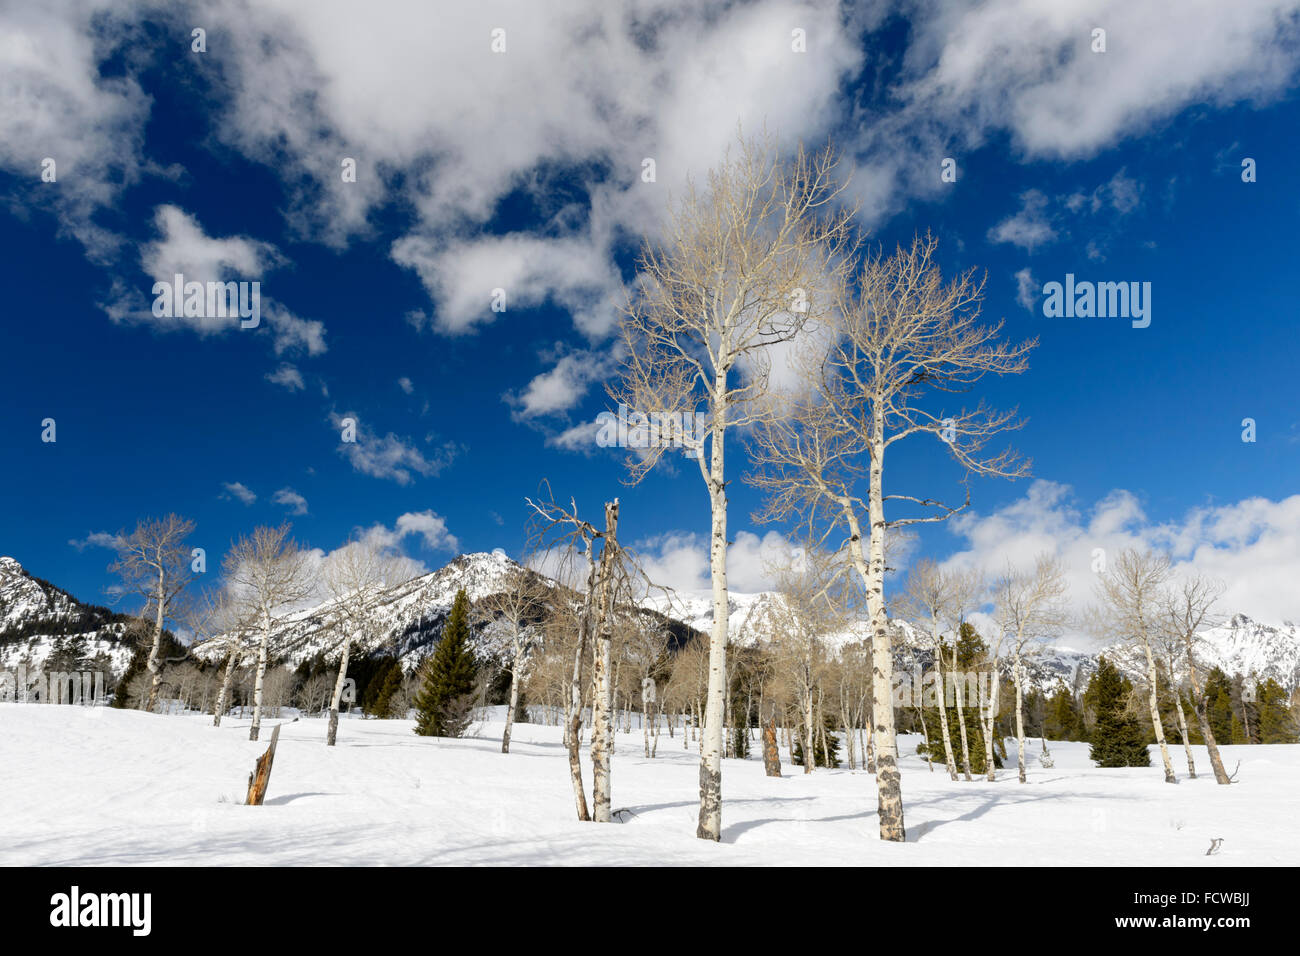 Aspen tree forest in wintertime with blue sky, Grand Teton national park, Wyoming, USA. - Stock Image